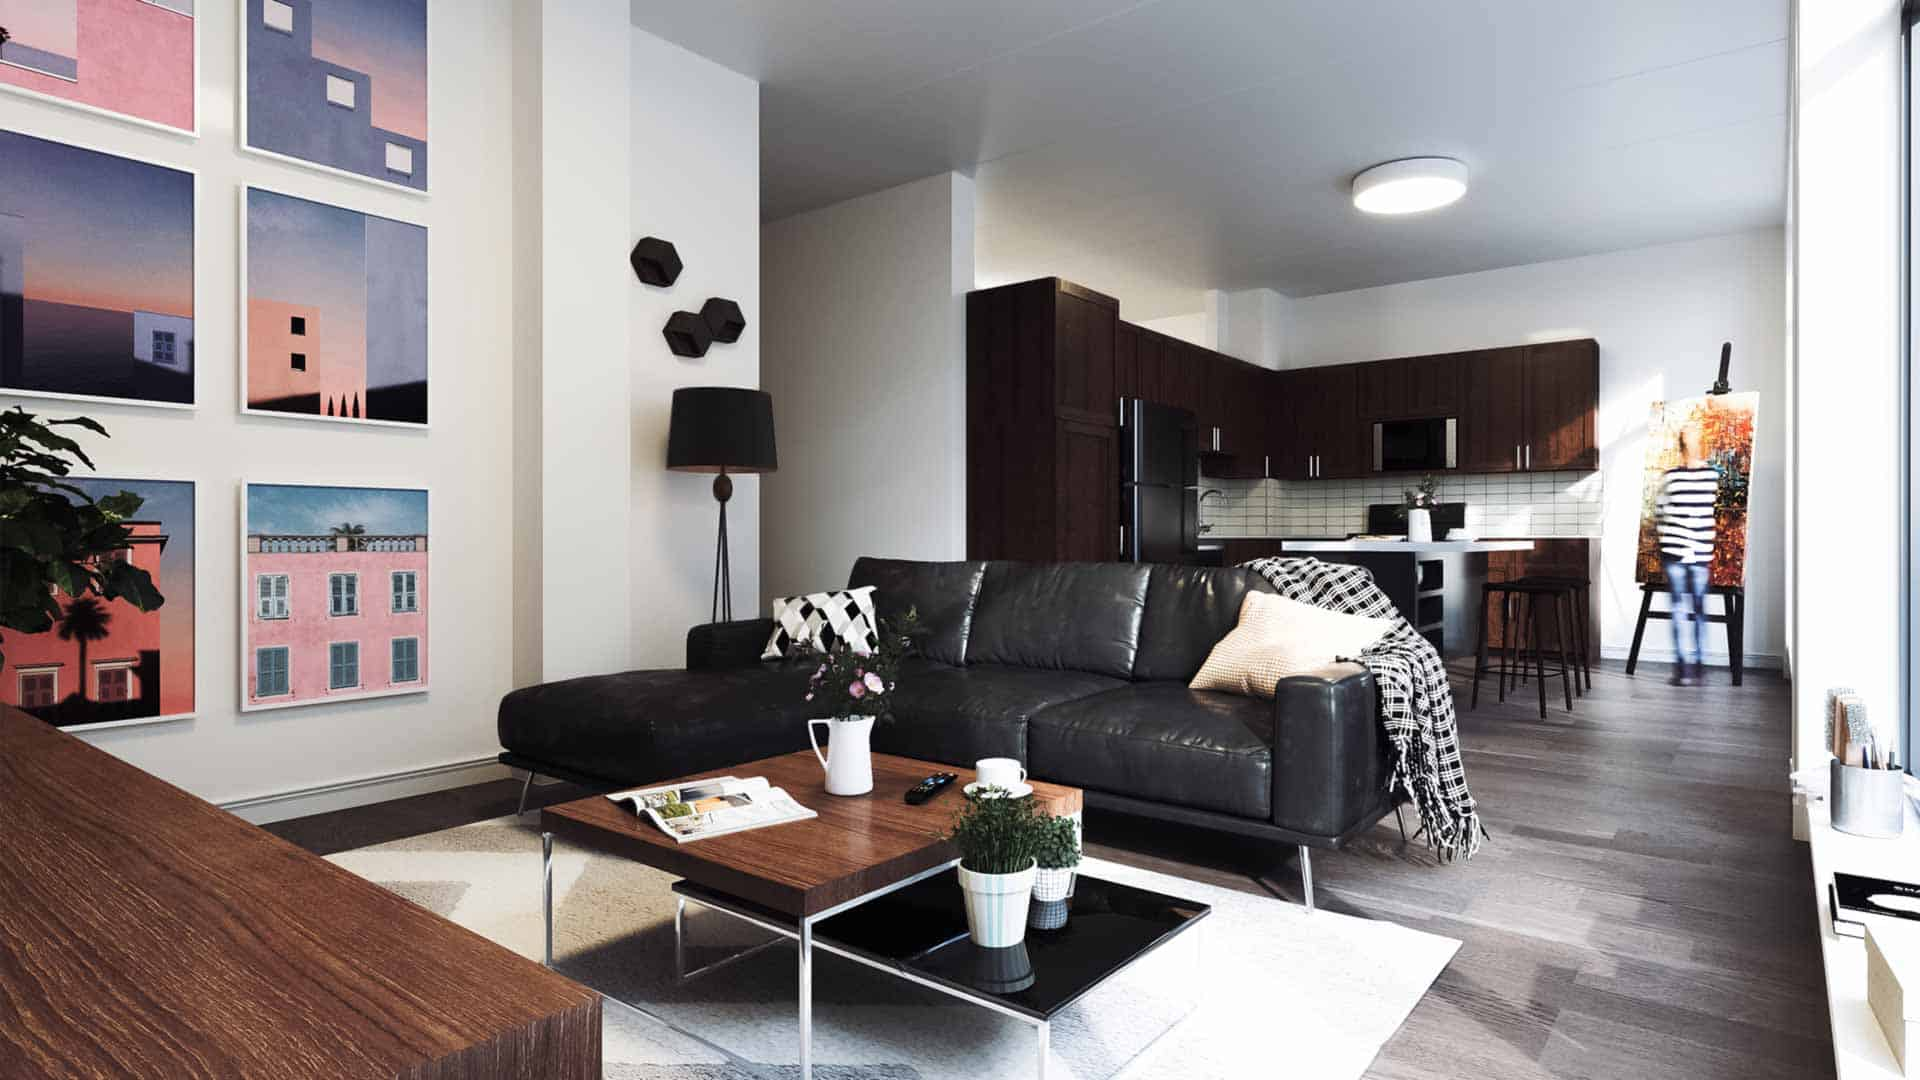 Artesan Lofts Aurora Apartments | Amenities